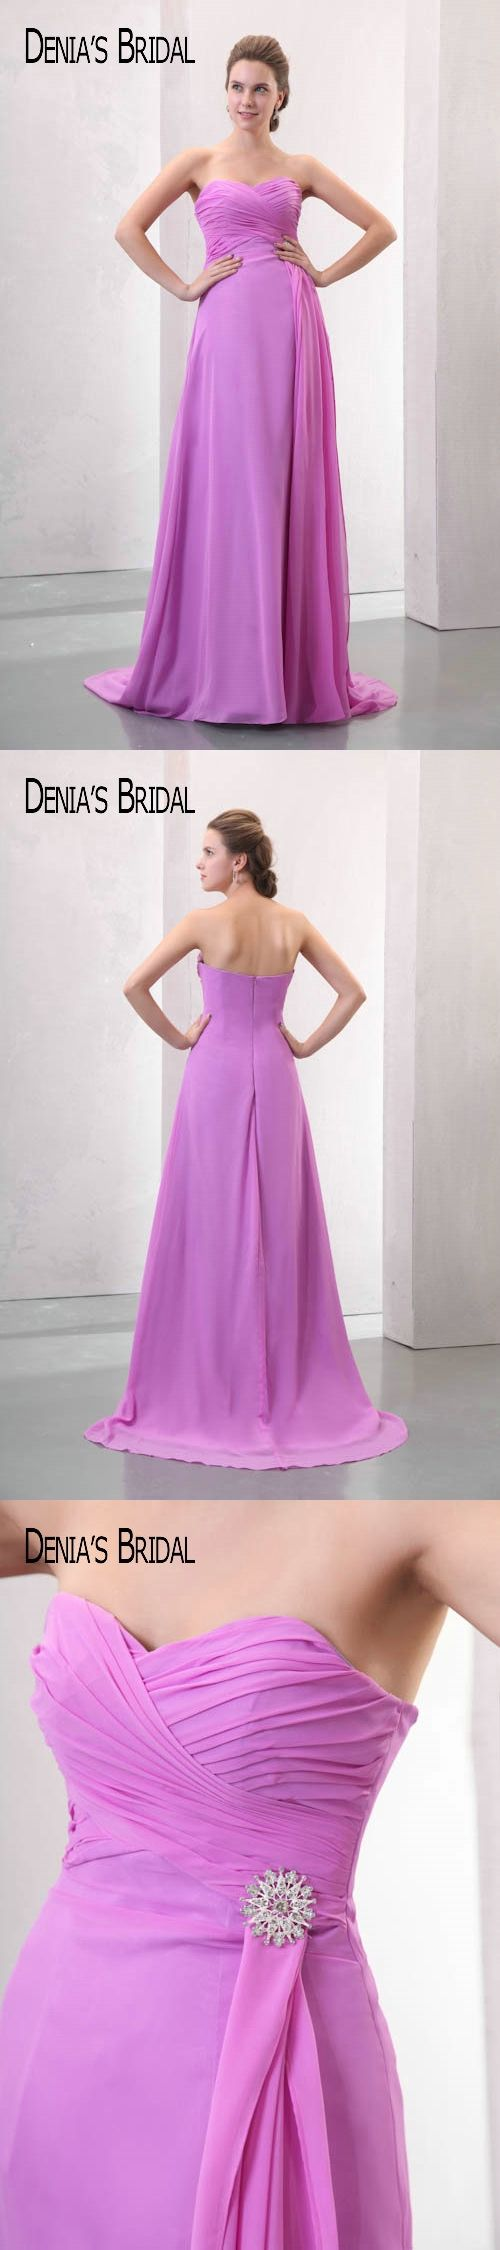 2017 simple elegant red wedding day sweetheart neckline chiffon long 2017 simple elegant red wedding day sweetheart neckline chiffon long bridesmaid dresses free shipping ombrellifo Image collections